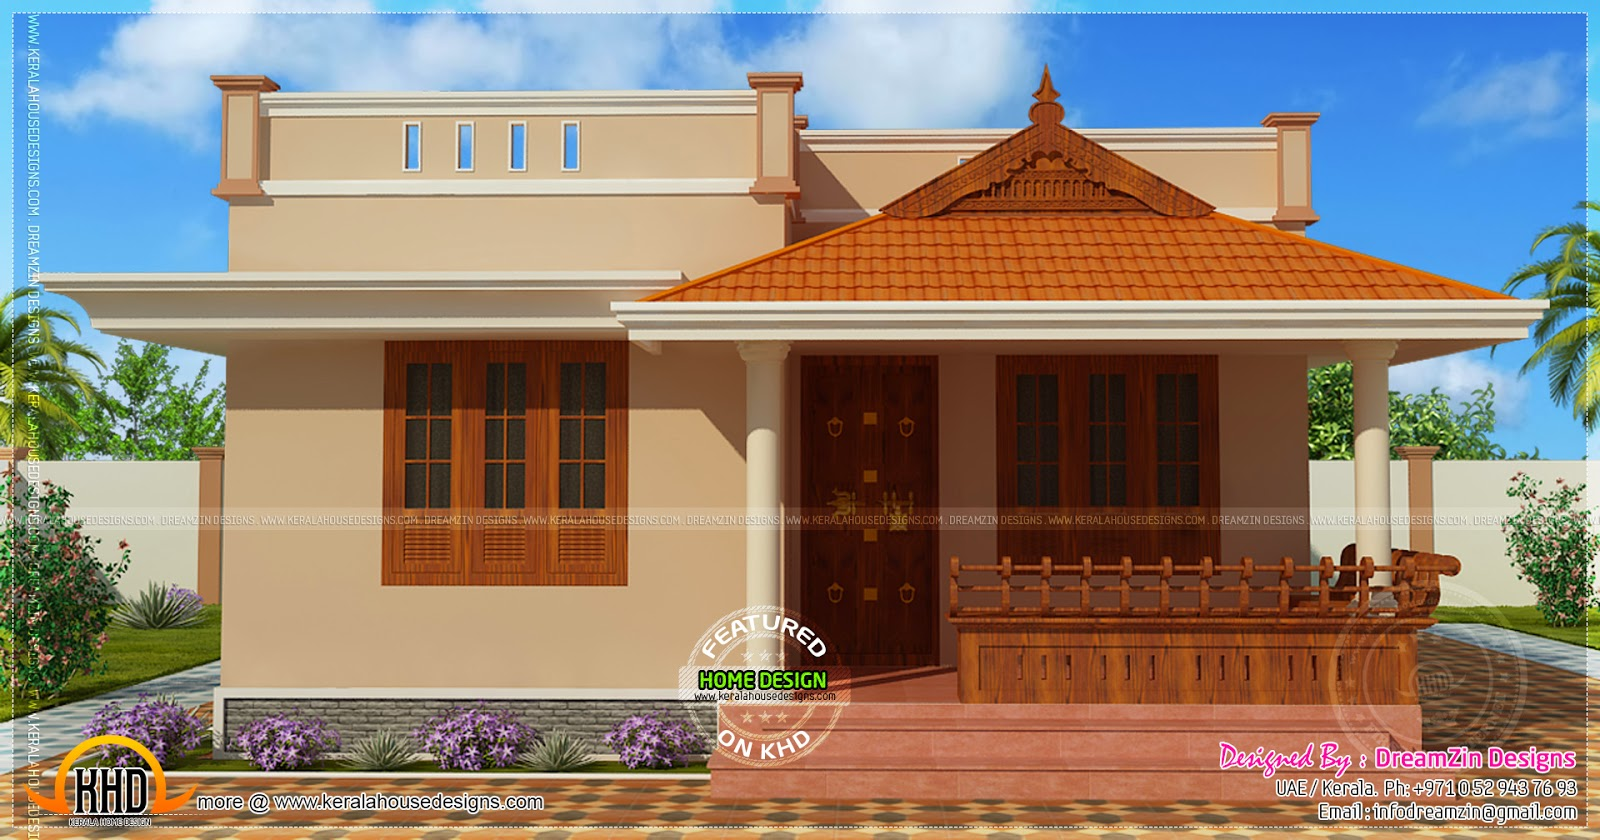 Small budget home plans design kerala male models picture for Small budget house plans in kerala